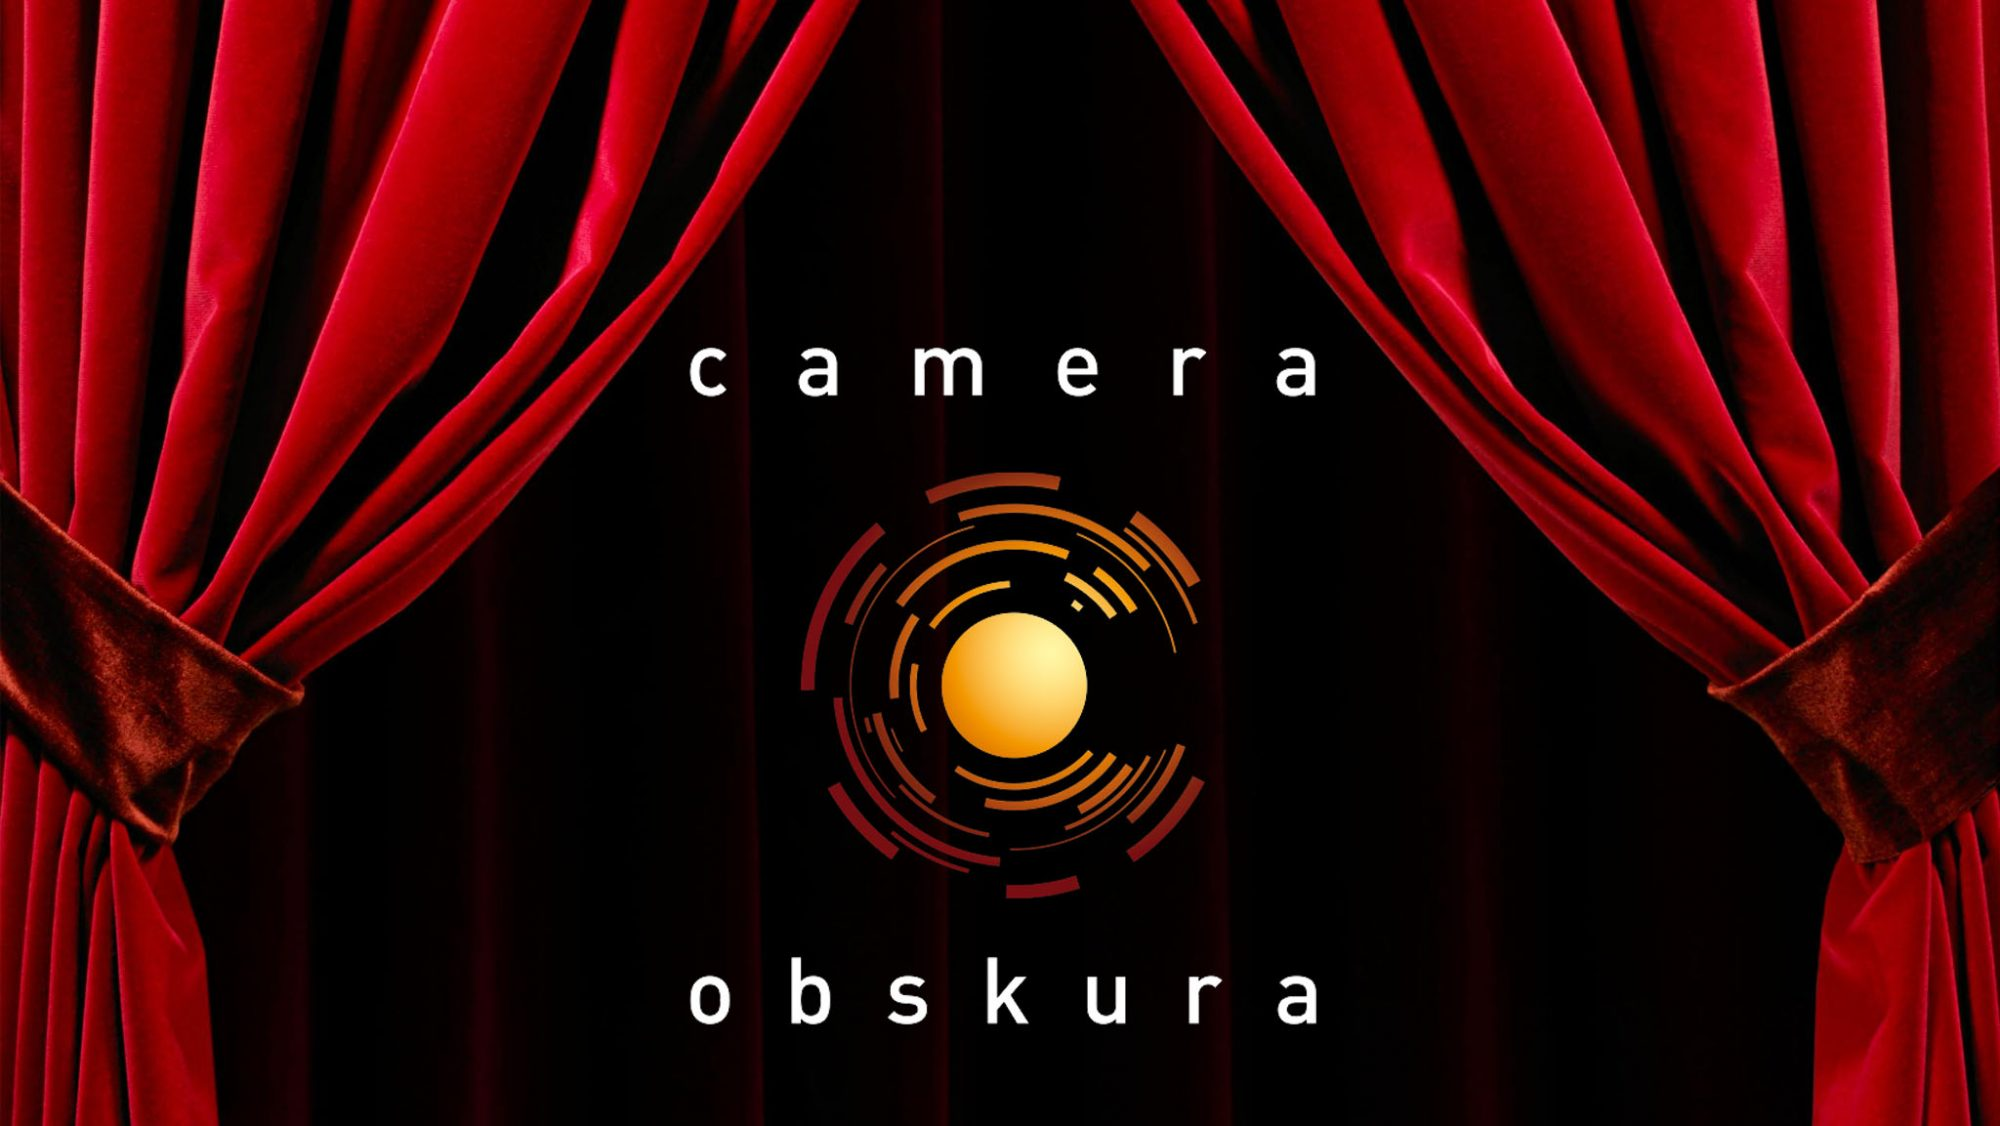 Good Night Obskura, and Good Luck Camera Obskura